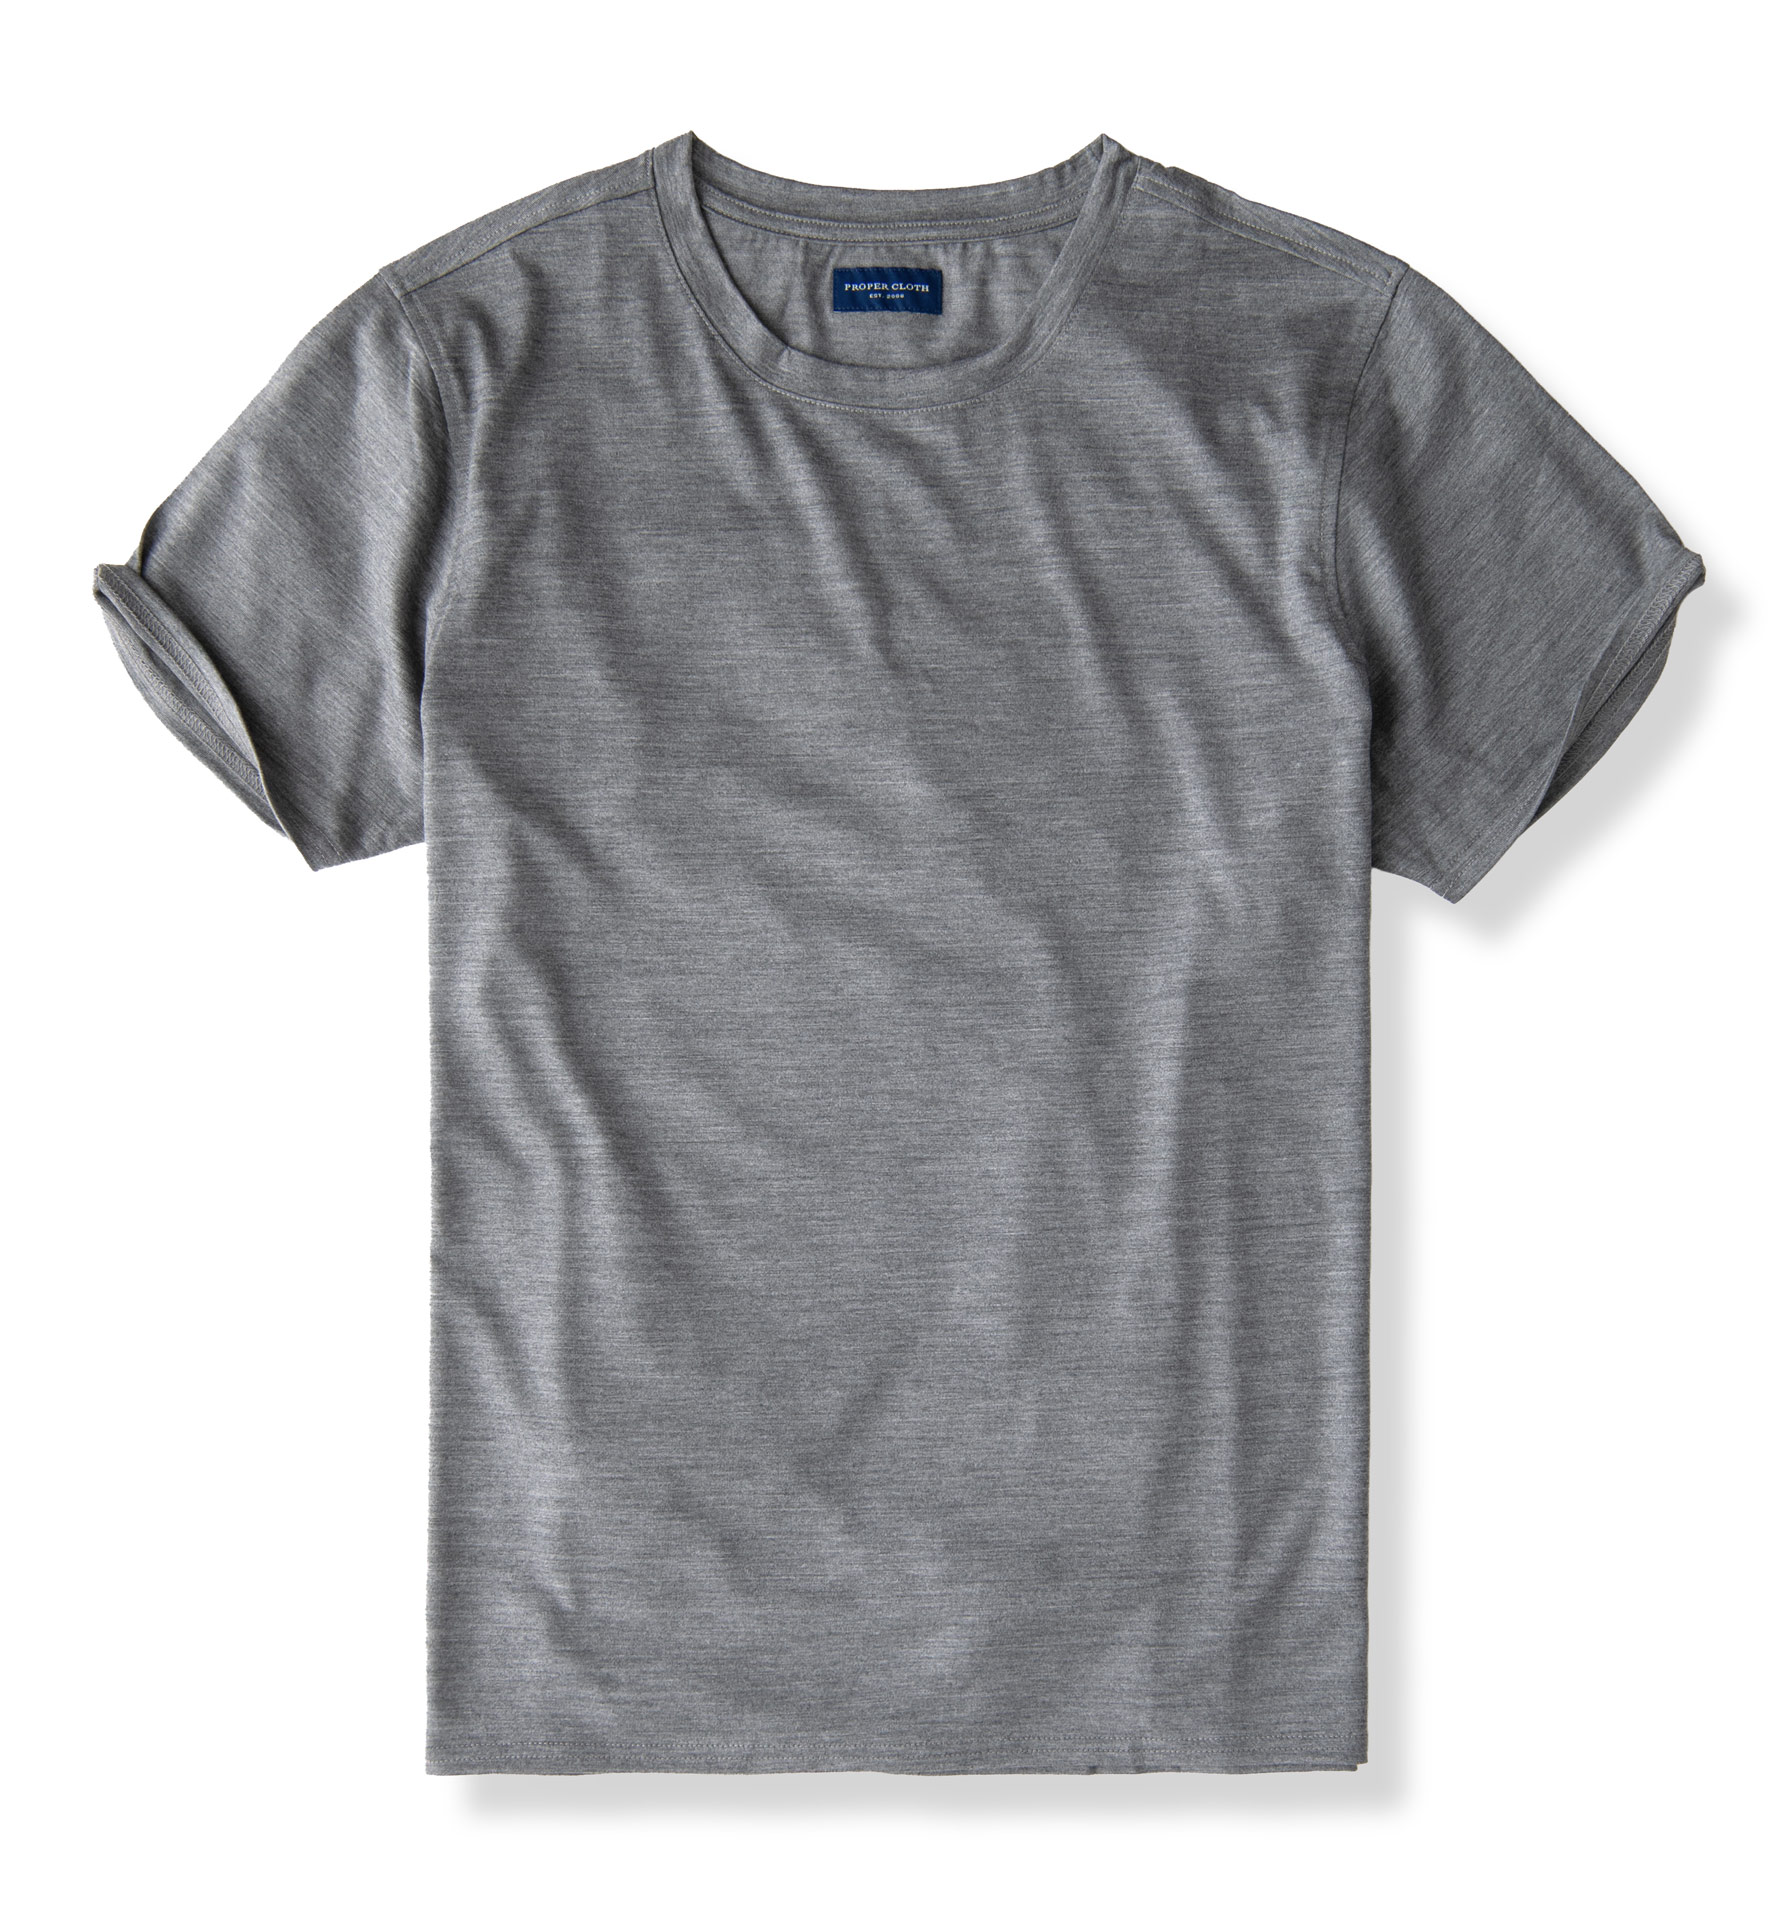 Zoom Image of Pewter Merino Wool Crewneck T-Shirt